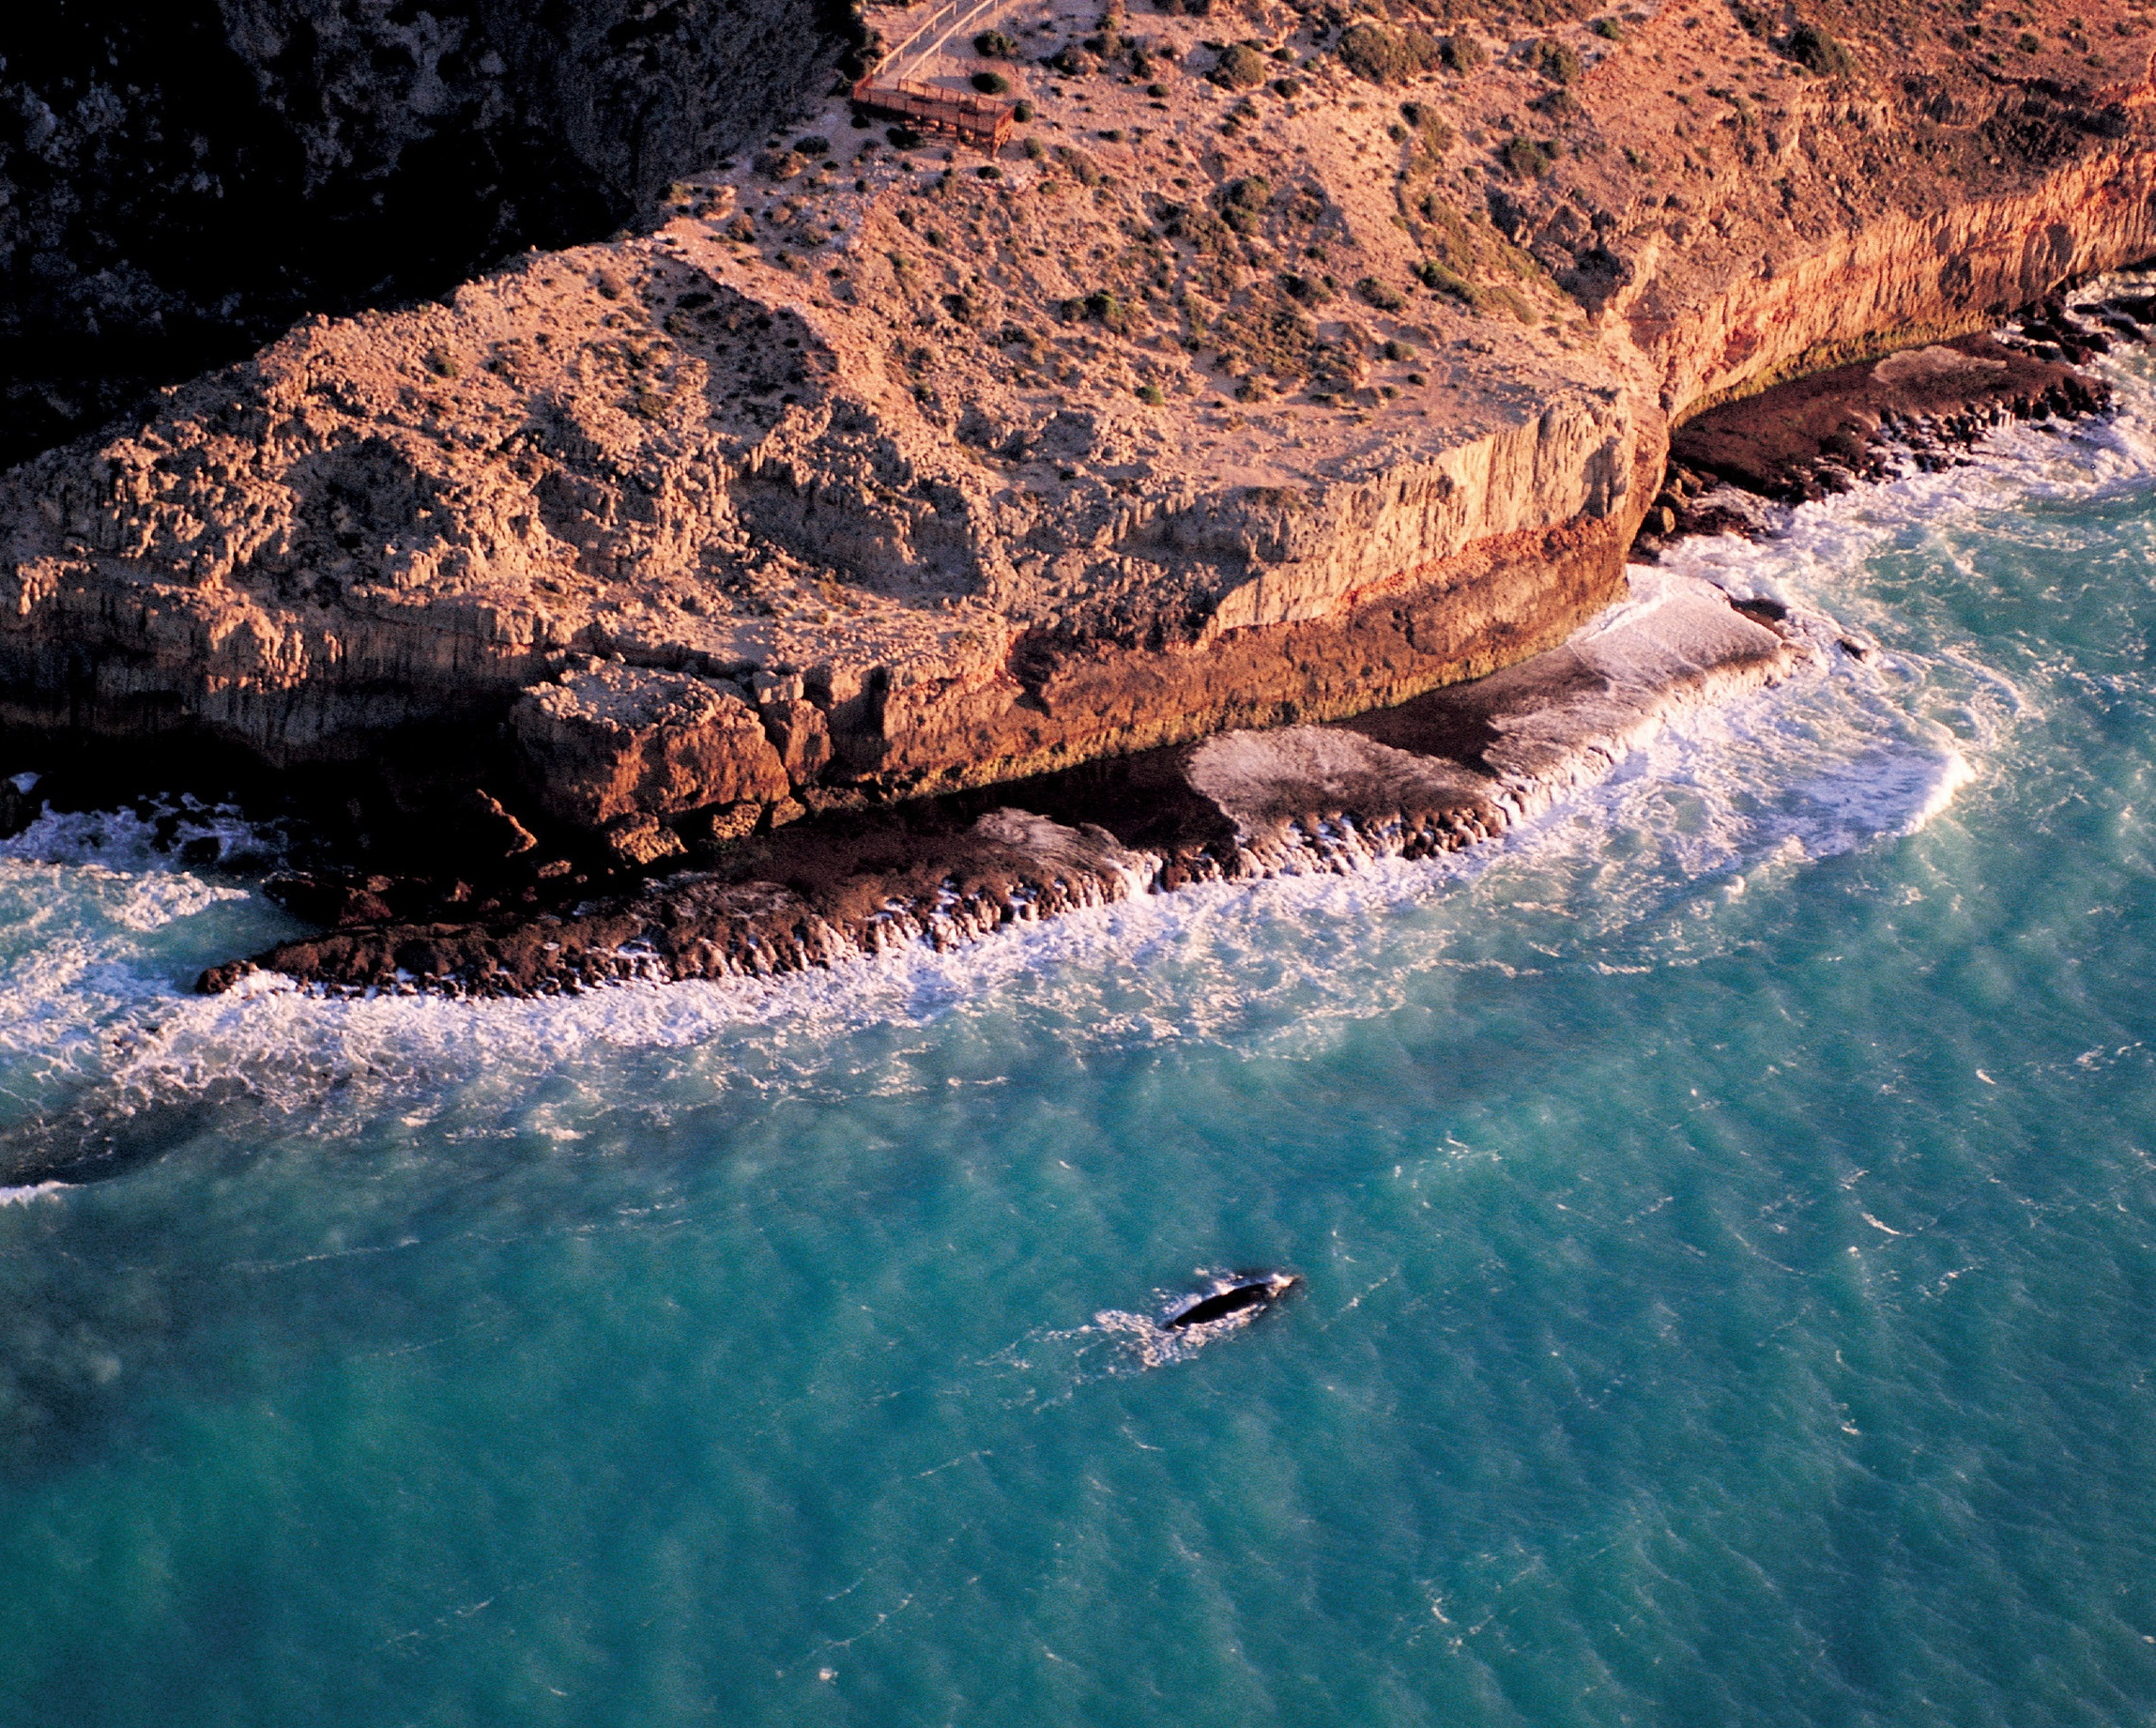 Southern right whale at the Head of Bight, South Australia.